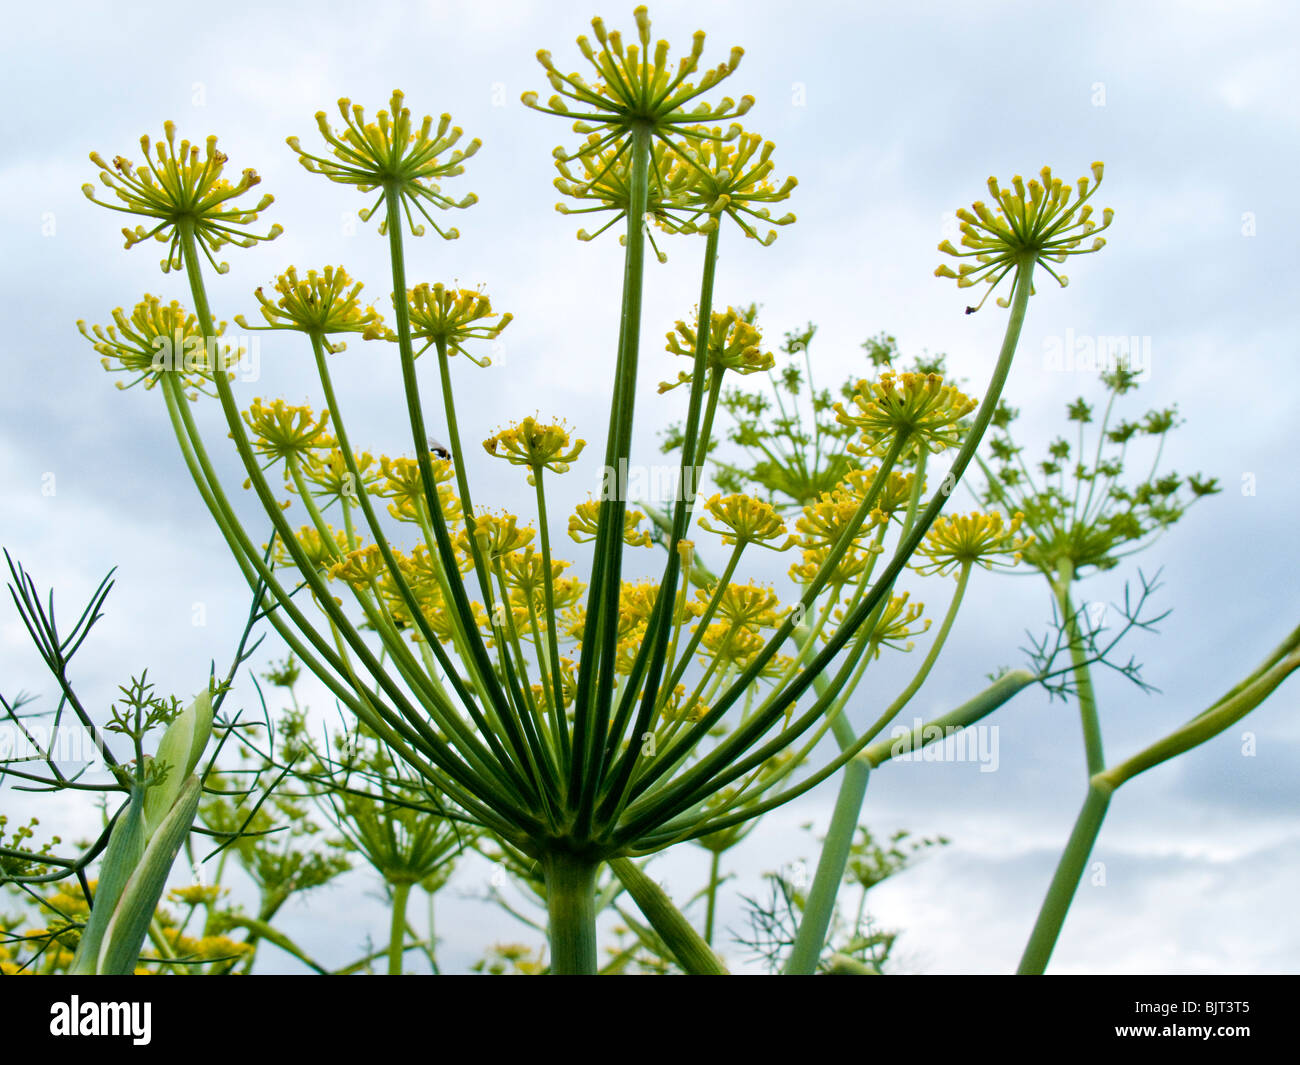 Fennel Foeniculum Vulgare Tall Herb With Yellow Flowers Stock